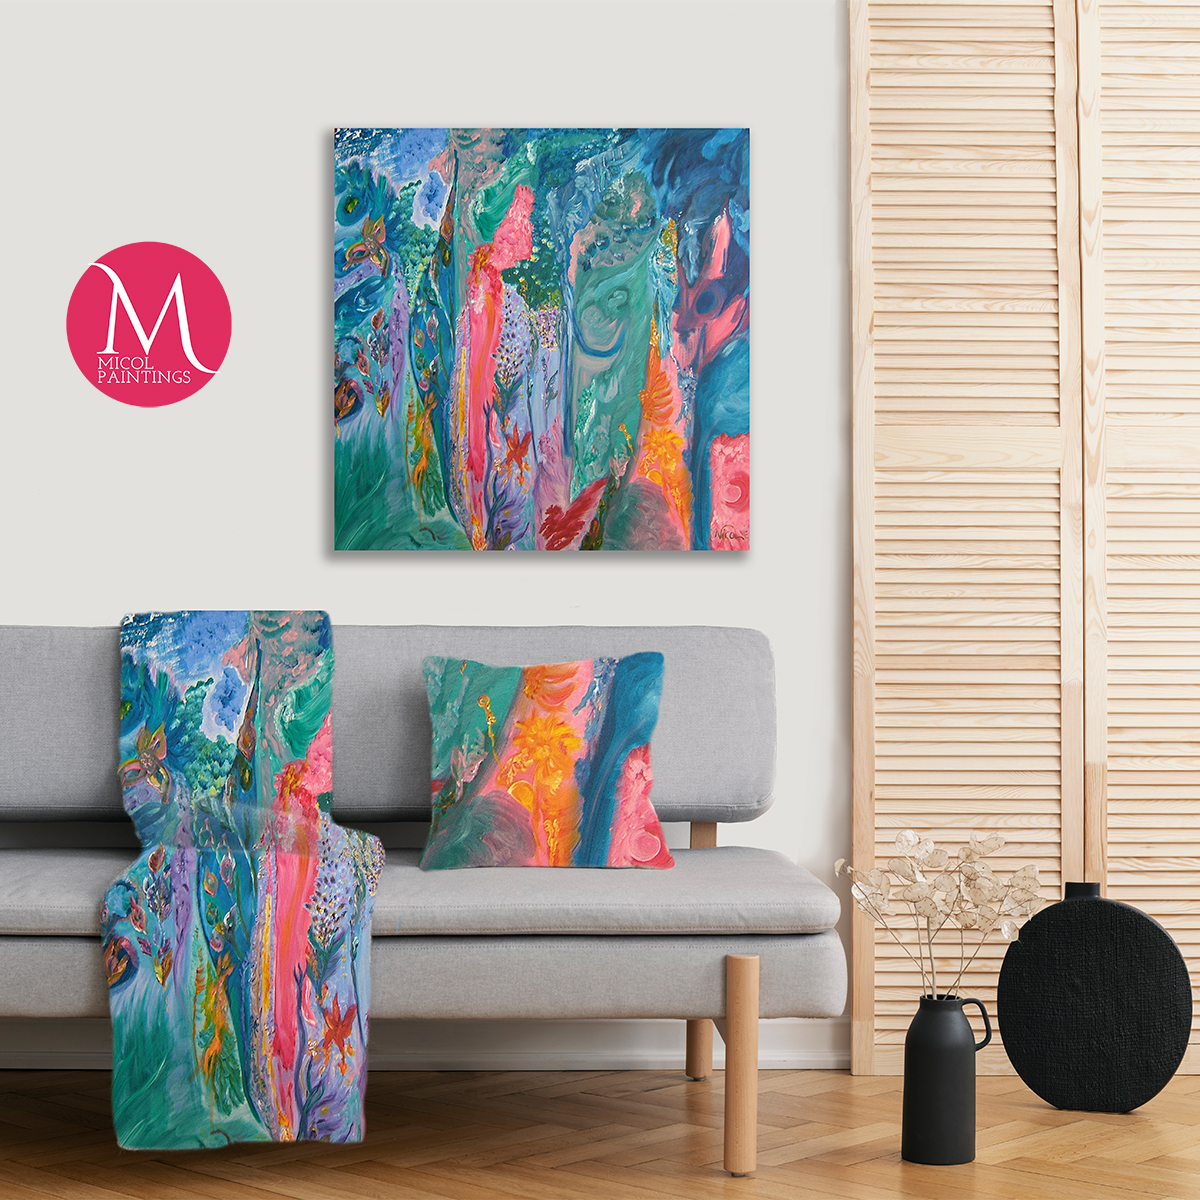 With one gorgeous piece of artwork we can create several matching items to complement your decor.